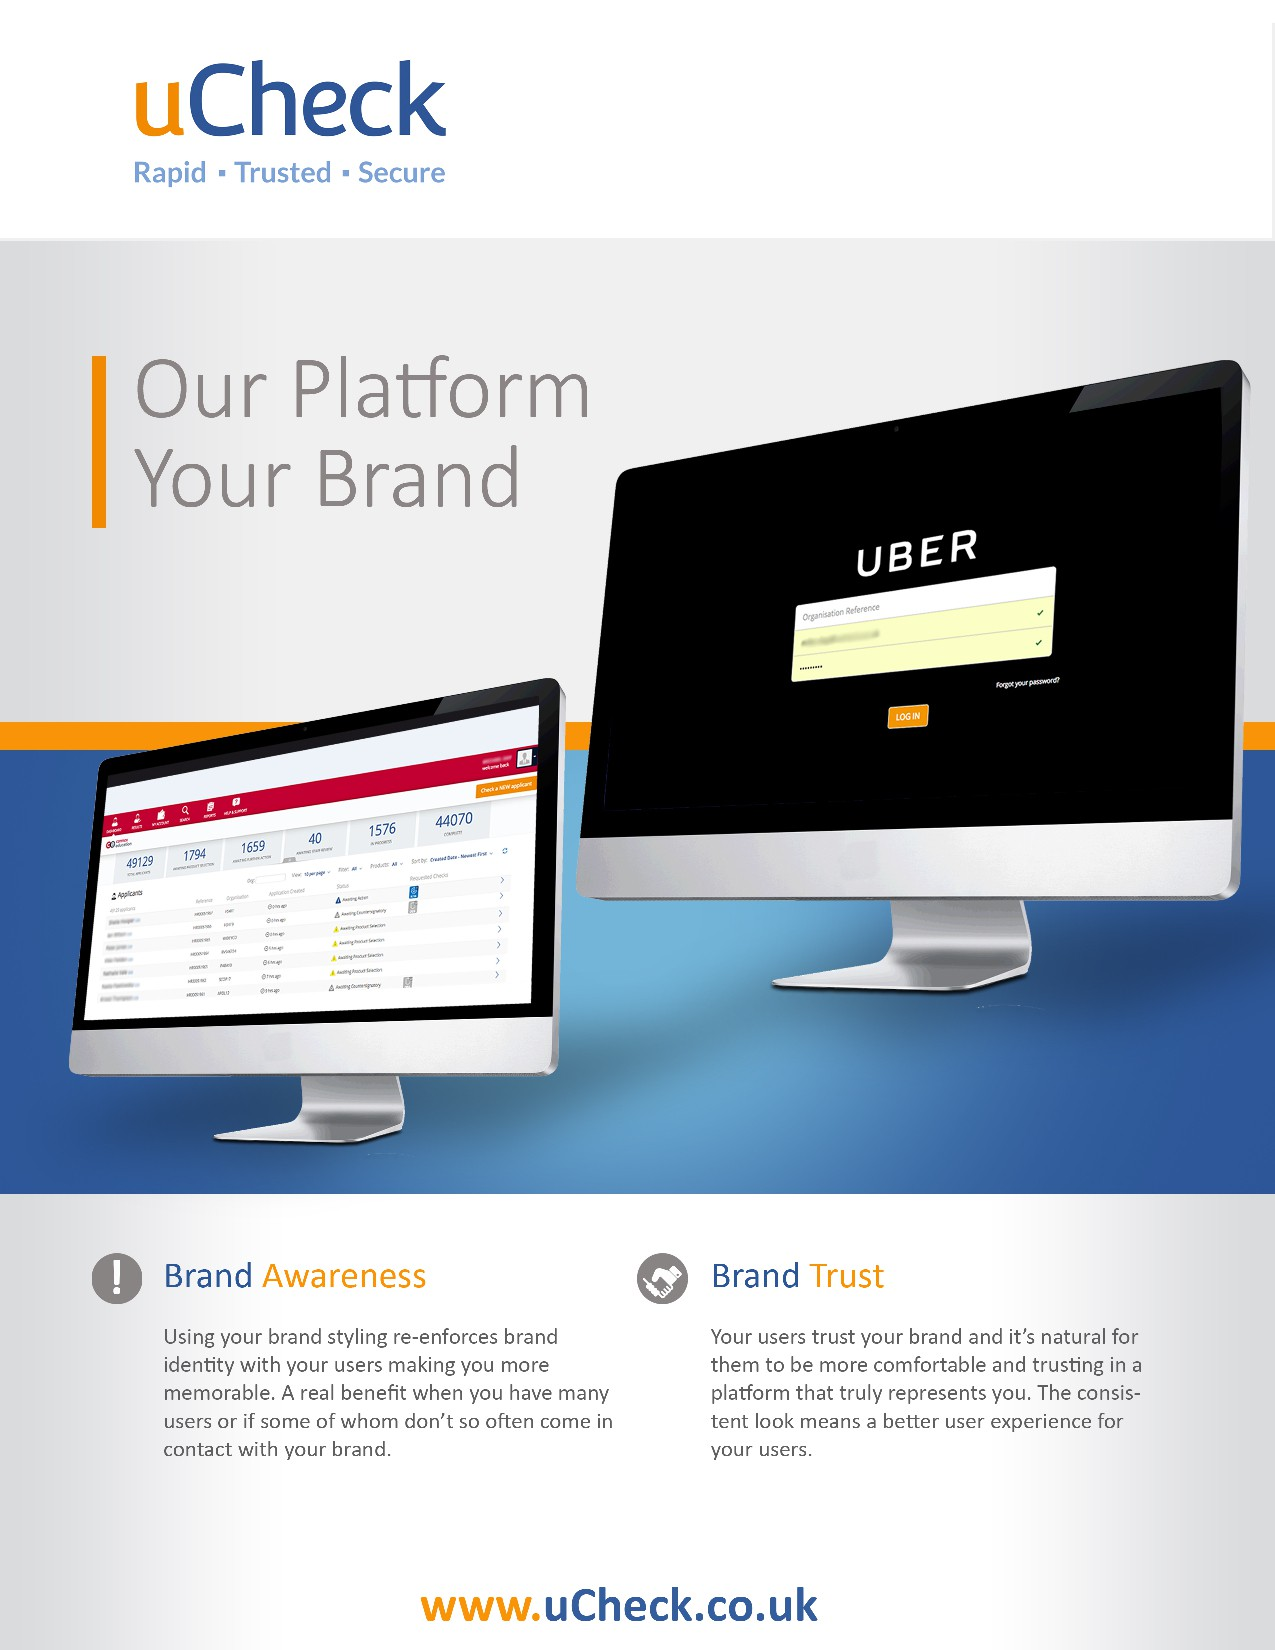 Clear, Professional and Stand Out Marketing PDF for uCheck